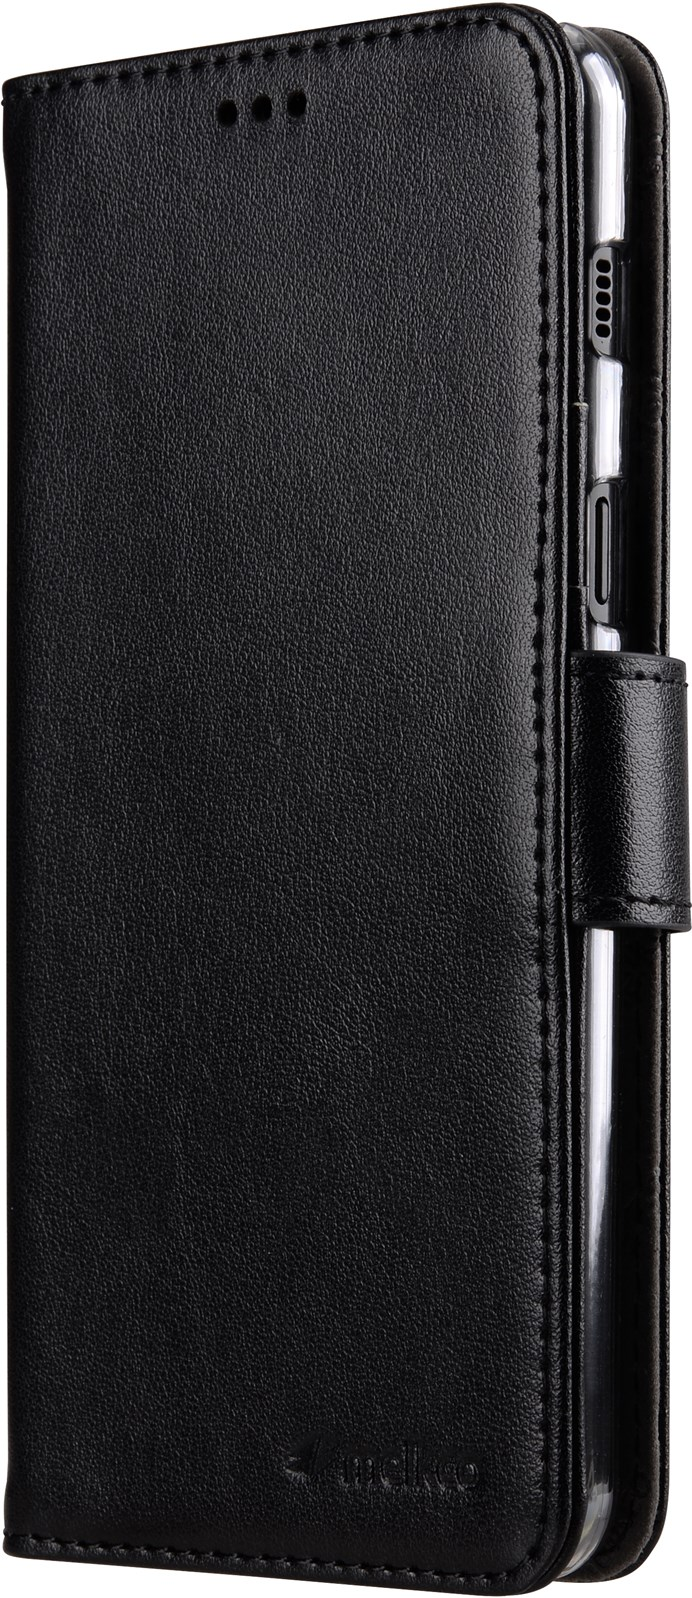 Melkco Walletcase Samsung Galaxy A6 Plus (2018) Black